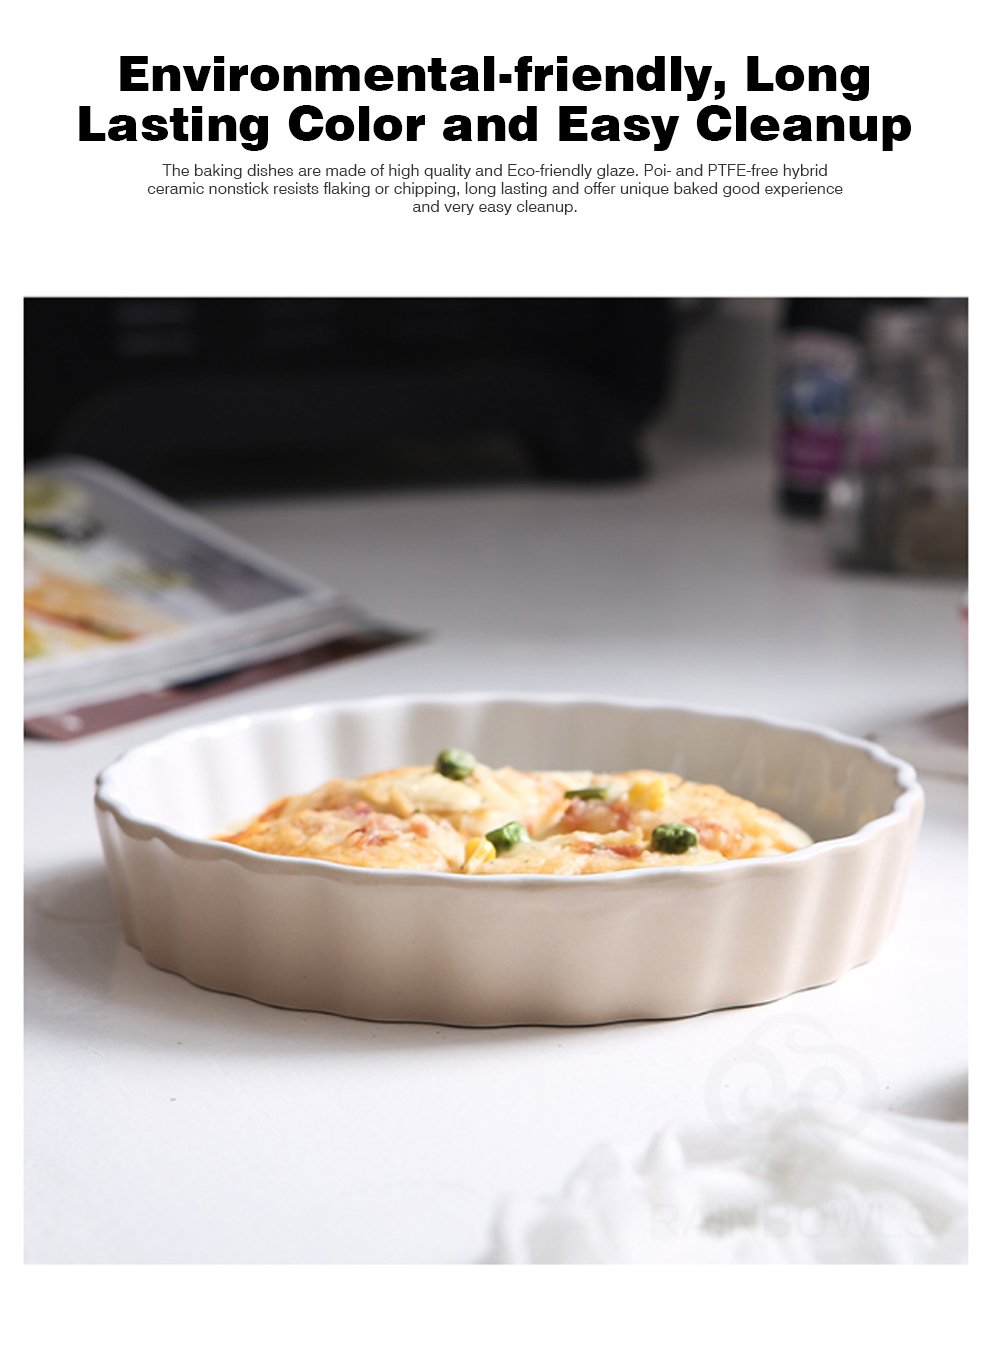 Cookie Sheet Baking Tray - Golden 11x11 inches Square Non-stick Bake Ware Cake Mould Biscuit Nougat Bakeware 6